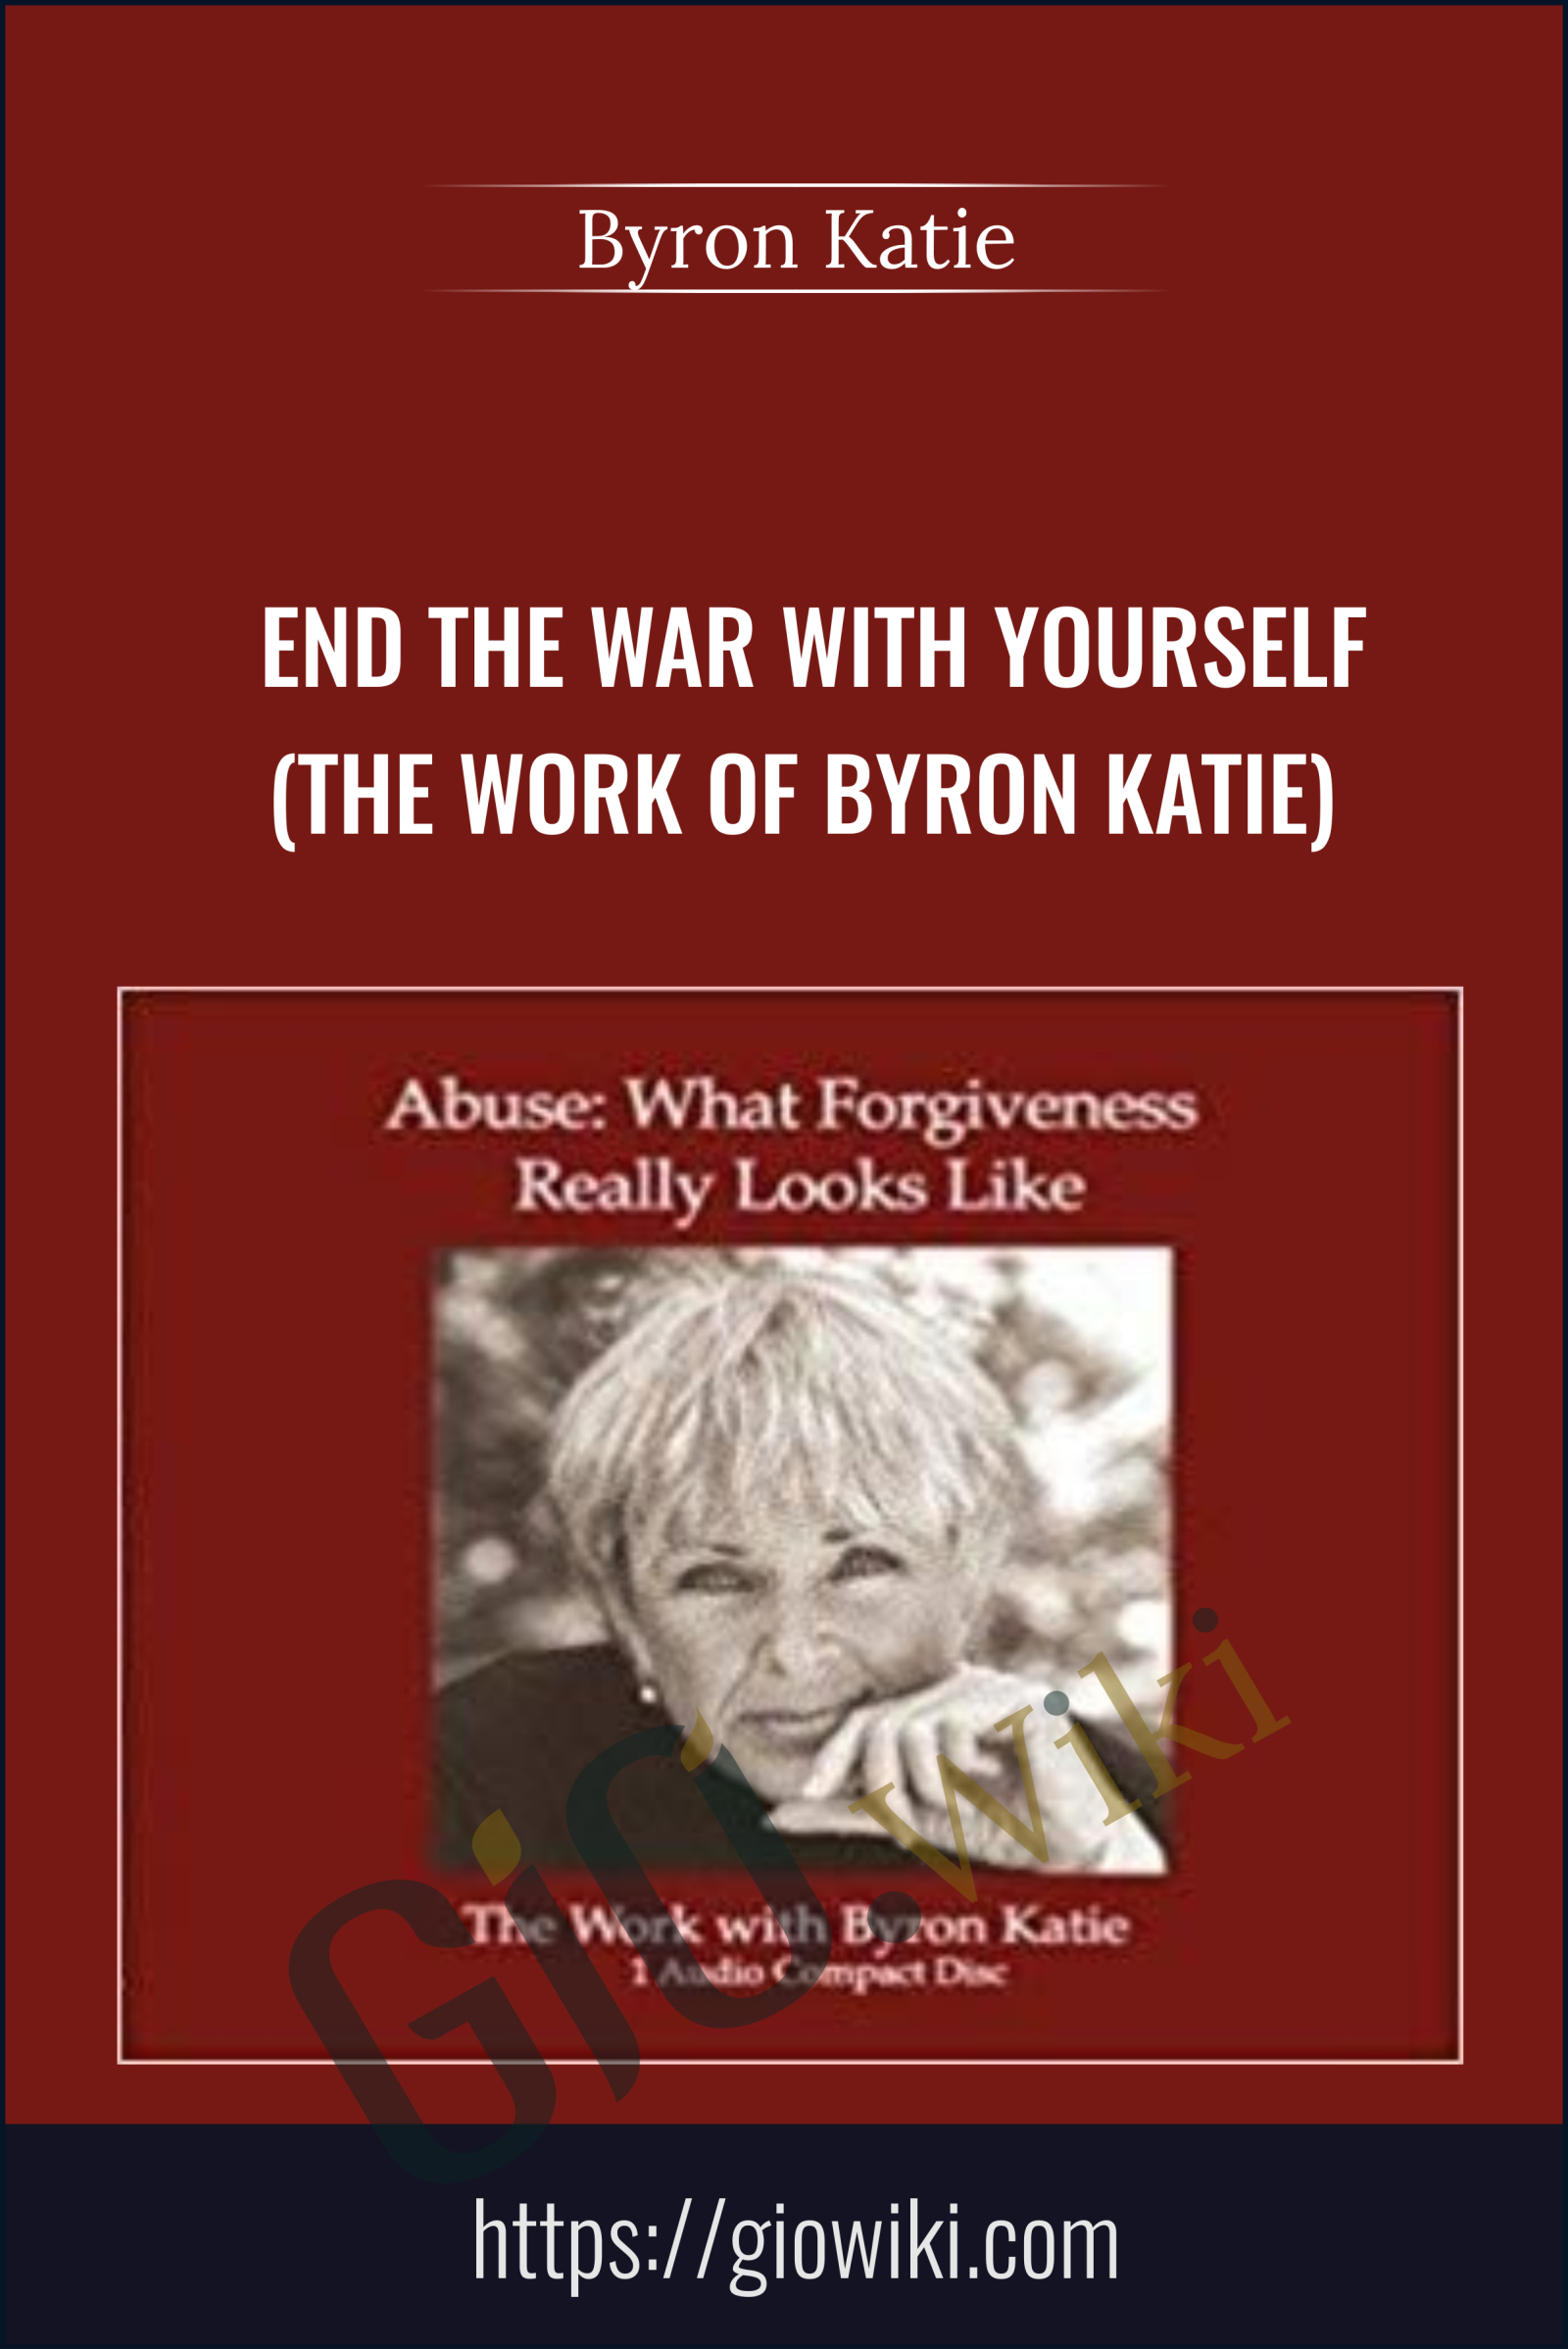 End the War with Yourself (The Work of Byron Katie) - Byron Katie